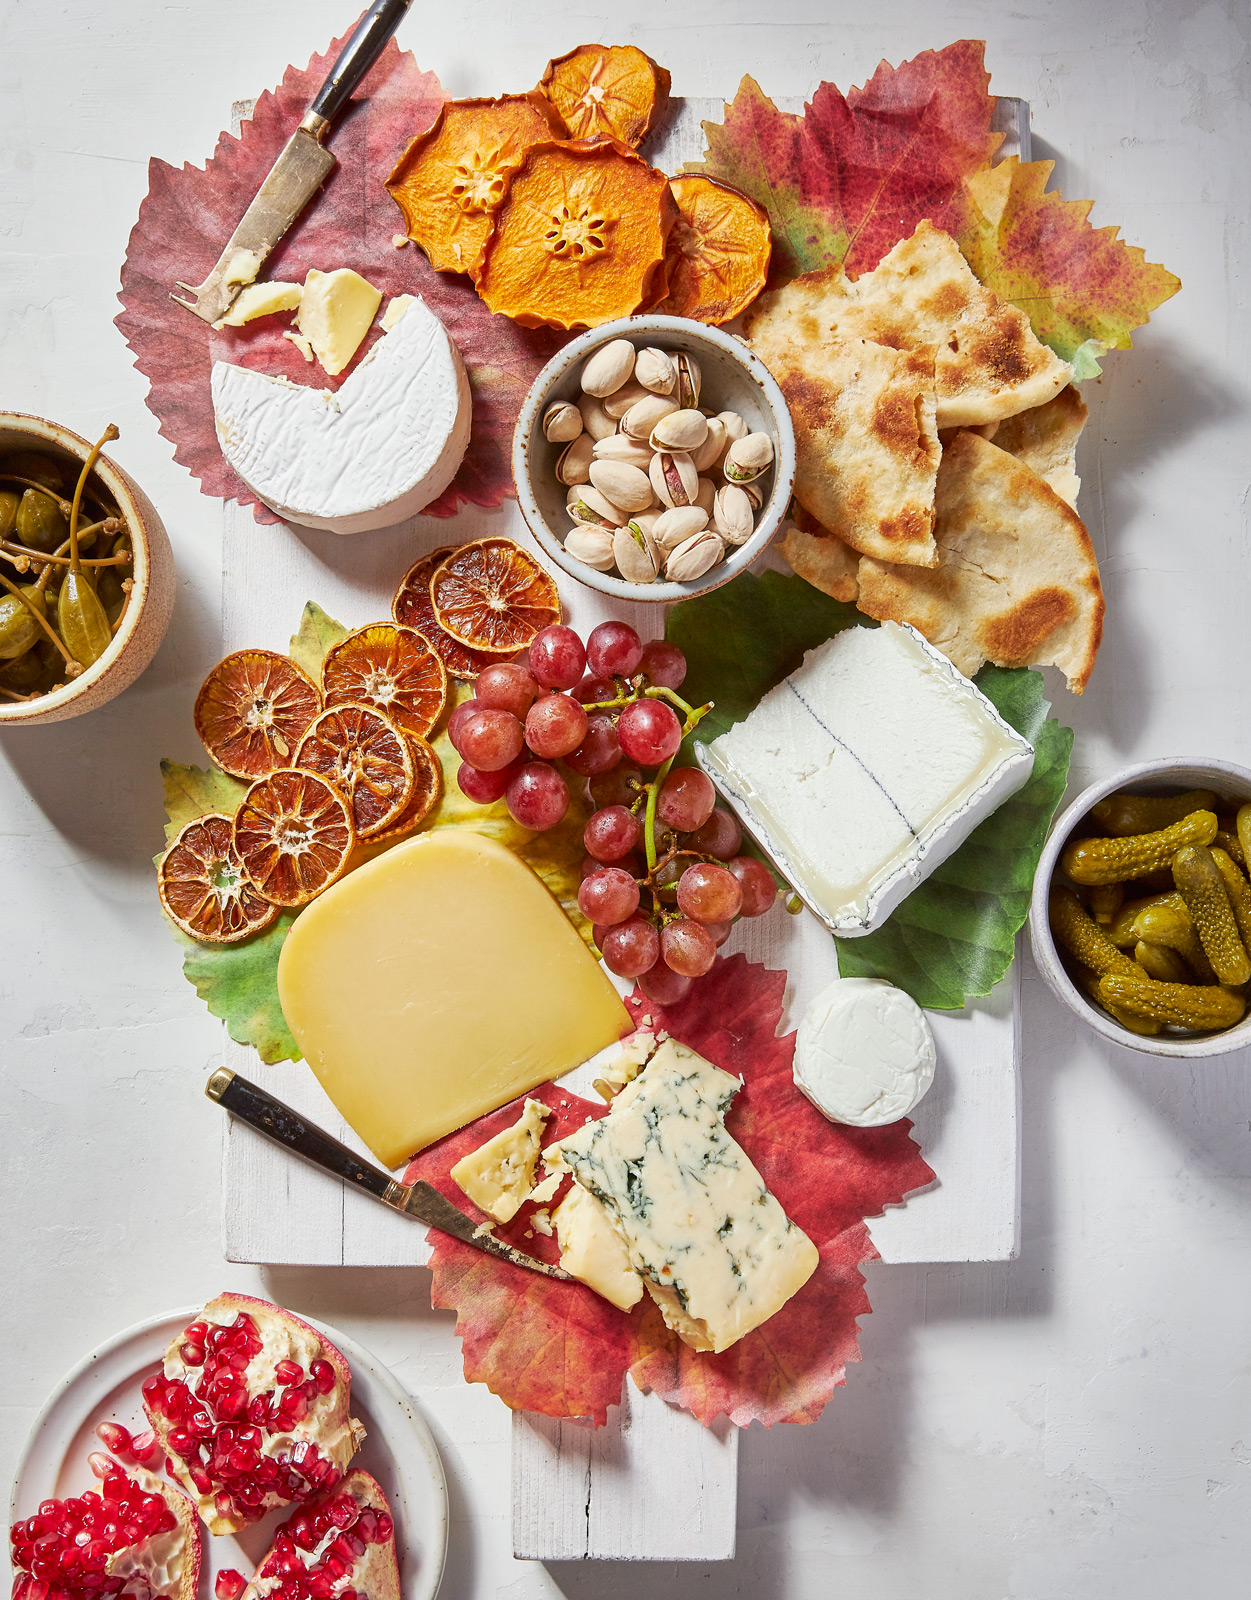 cheese board with fruit and nuts and decorated with leaves